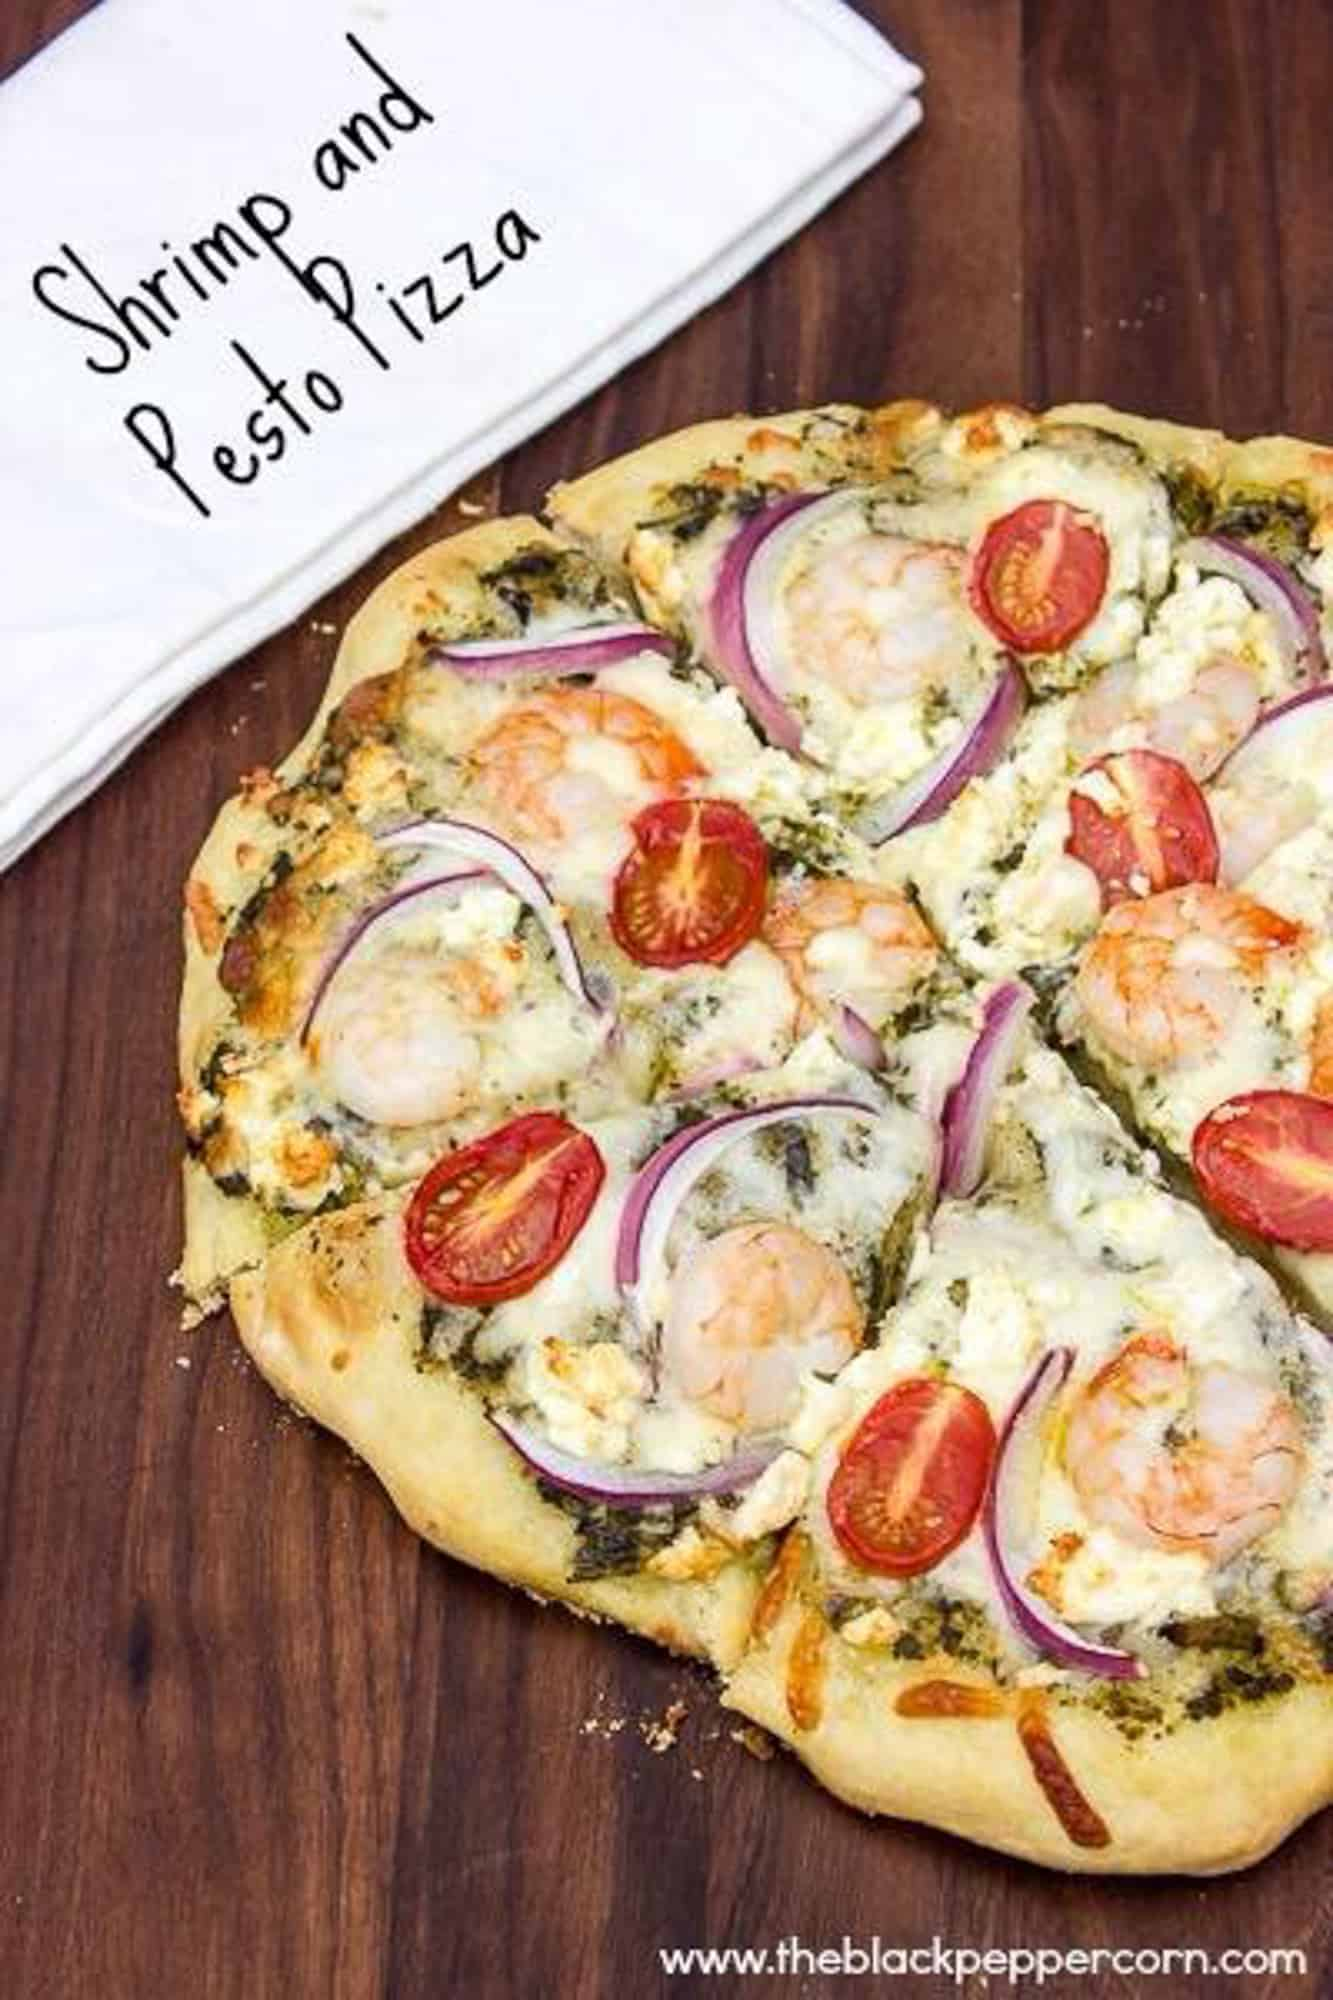 How to cook a pizza on a grill with this great BBQ pizza recipe, made with shrimp, pesto, red onions, grape tomatoes, feta cheese and mozzarella.